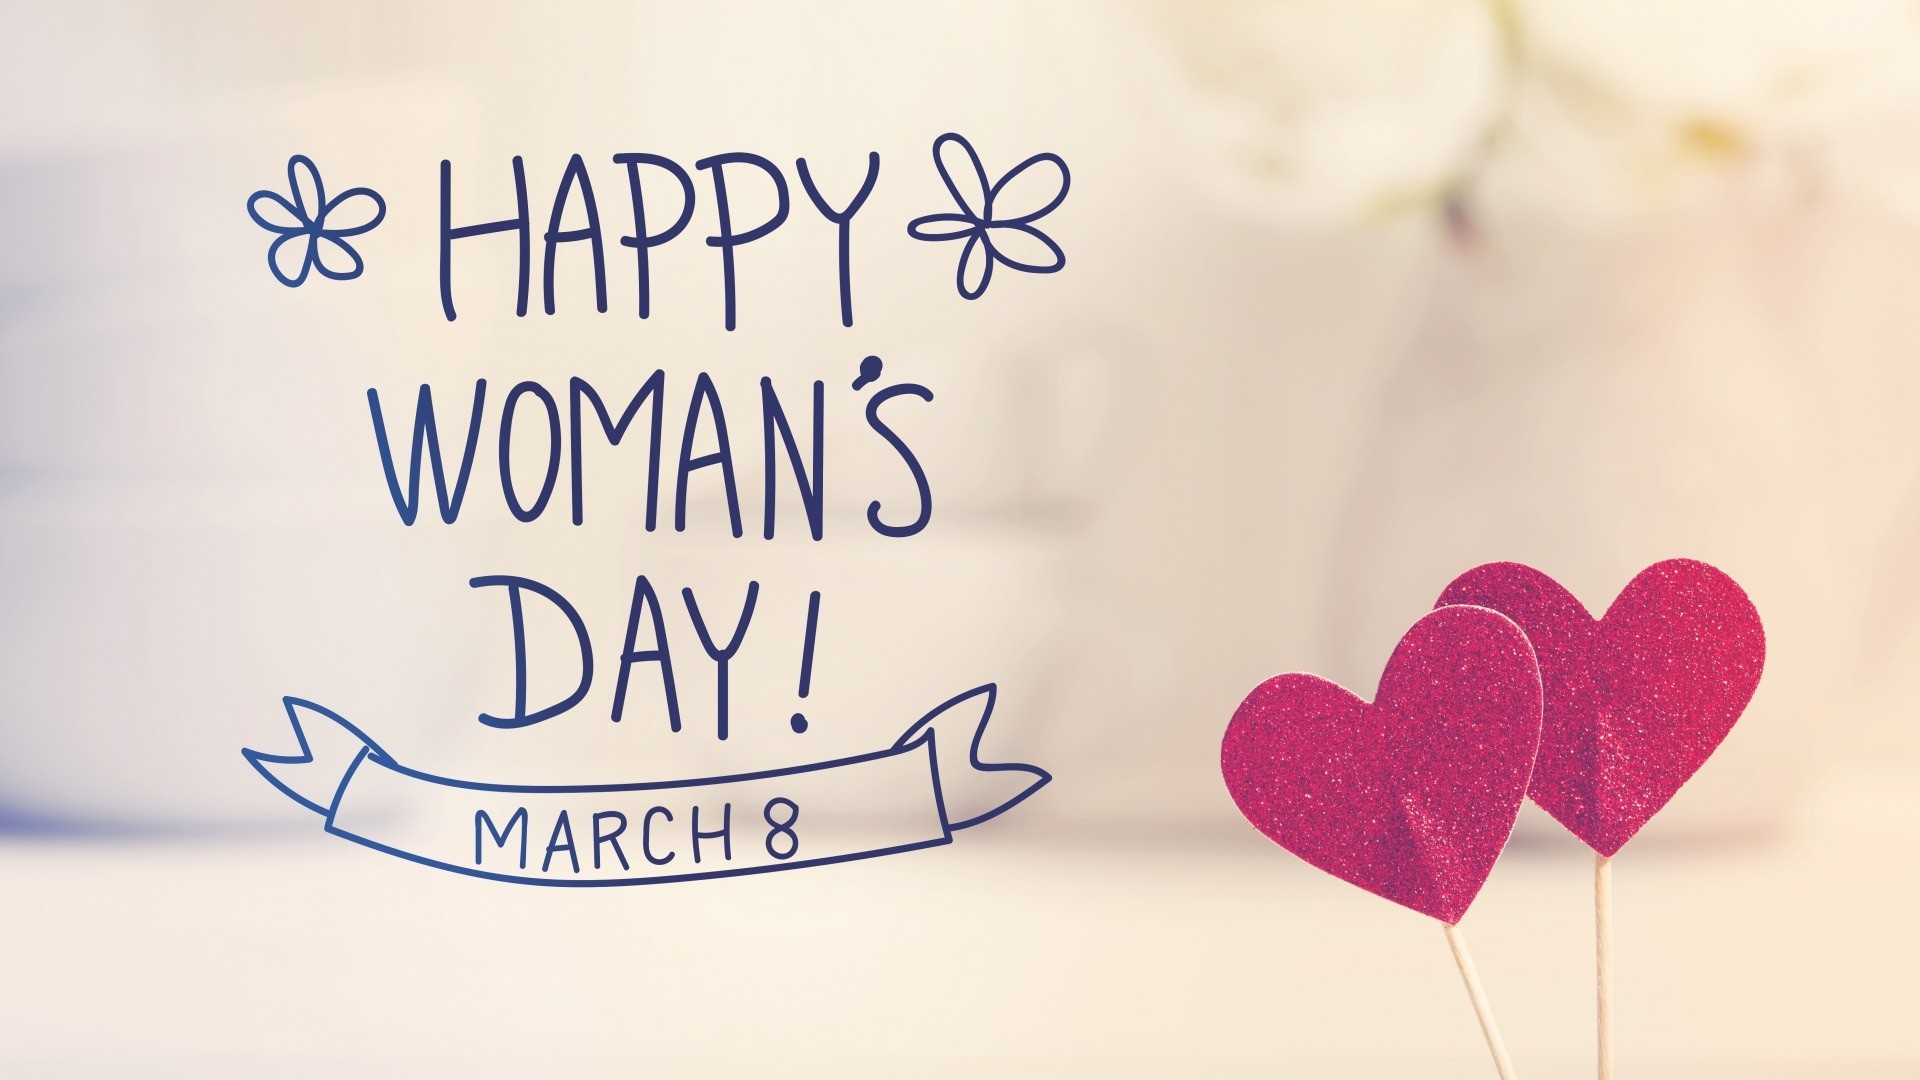 Happy Women's Day hd image download